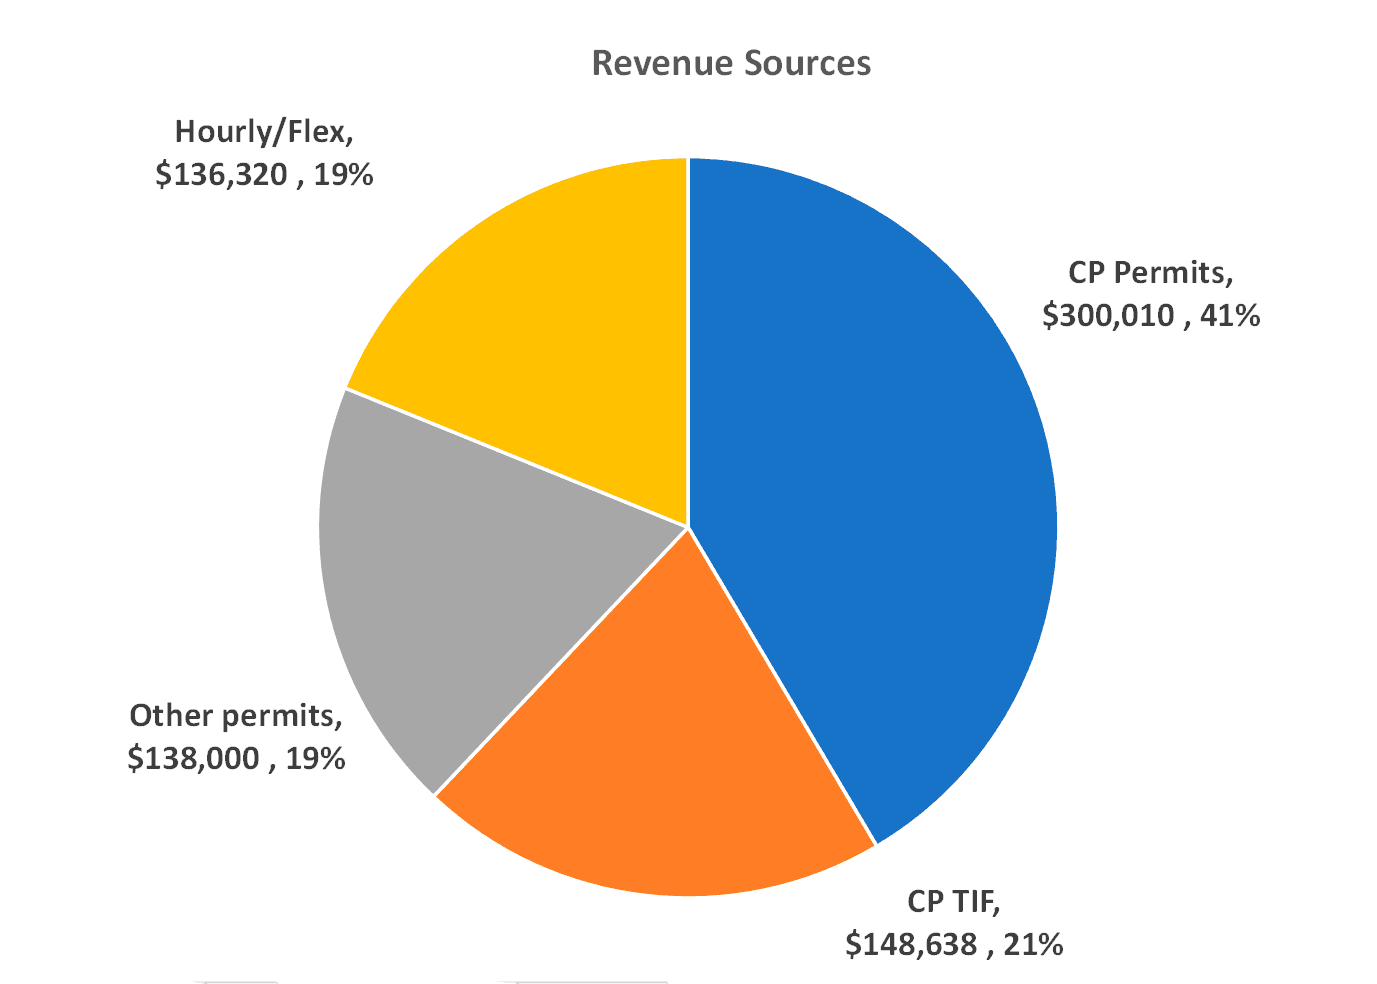 RevenueChart